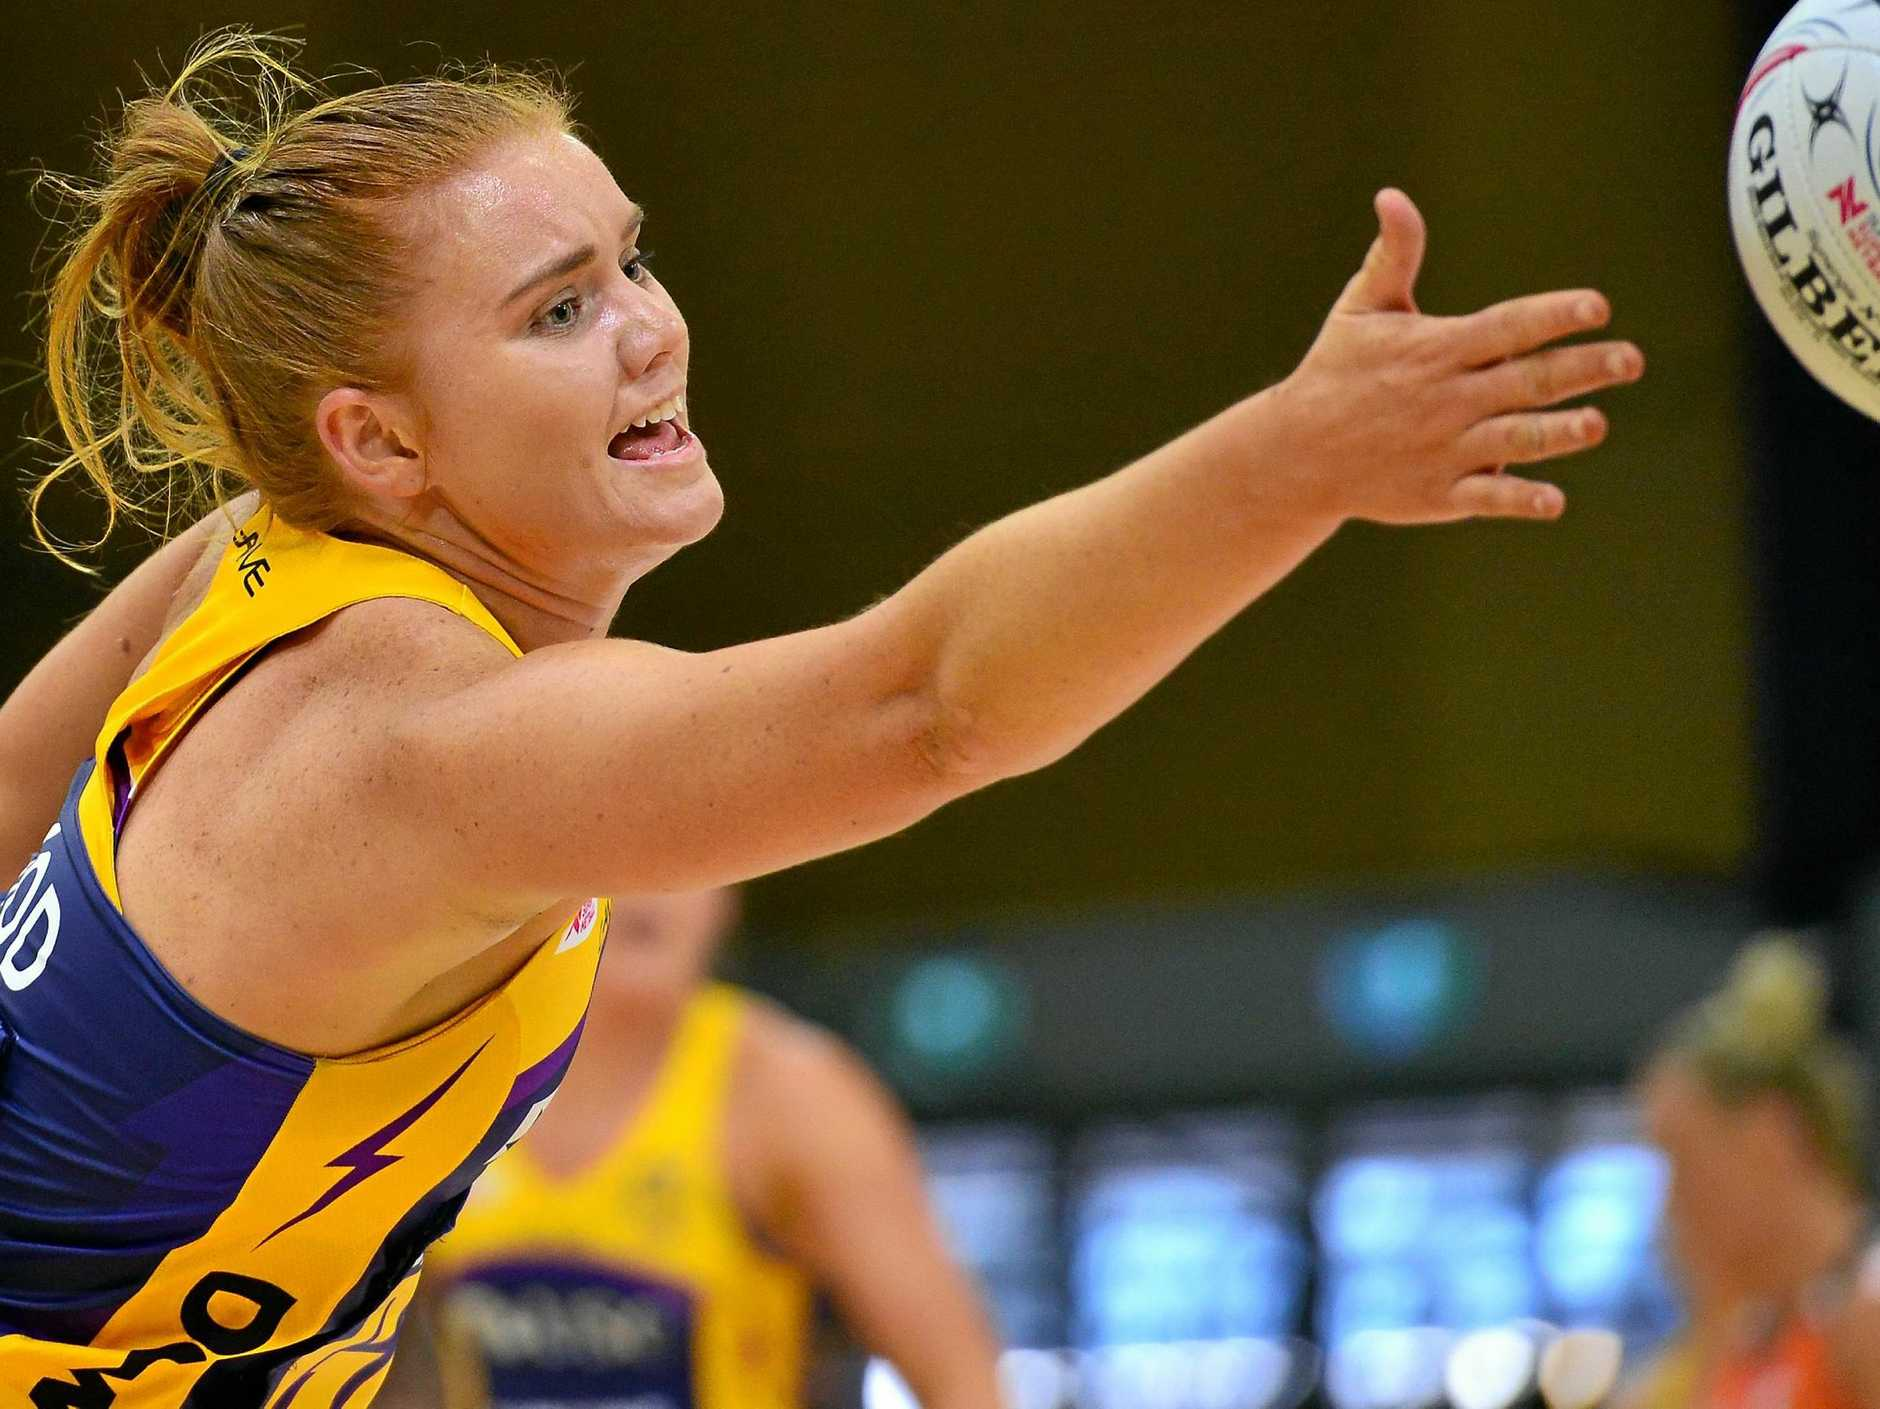 Stephanie Wood in action at University of the Sunshine Coast against the Giants.